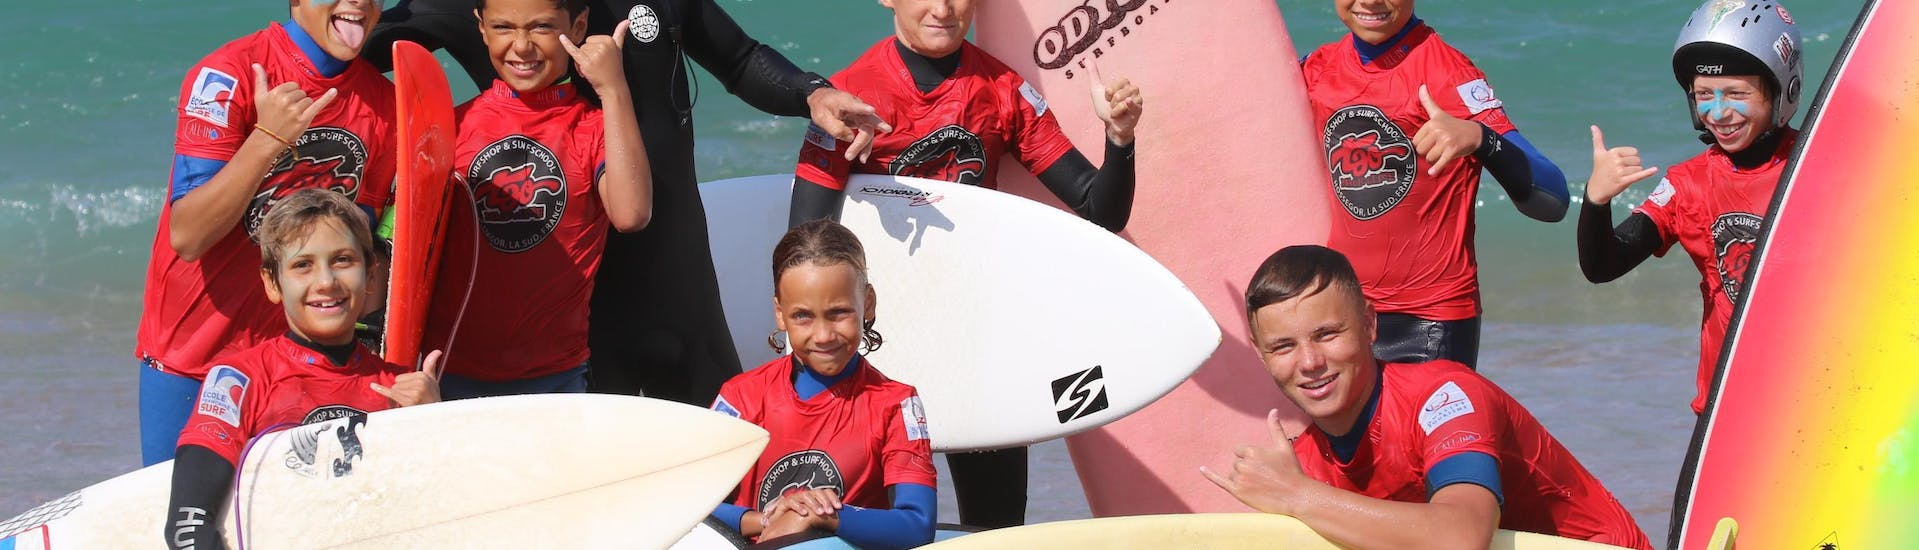 Children has a Surfing Lessonson the Plage Sud in Hossegor in Low Season with their instructor from Tao Magic Glisse.